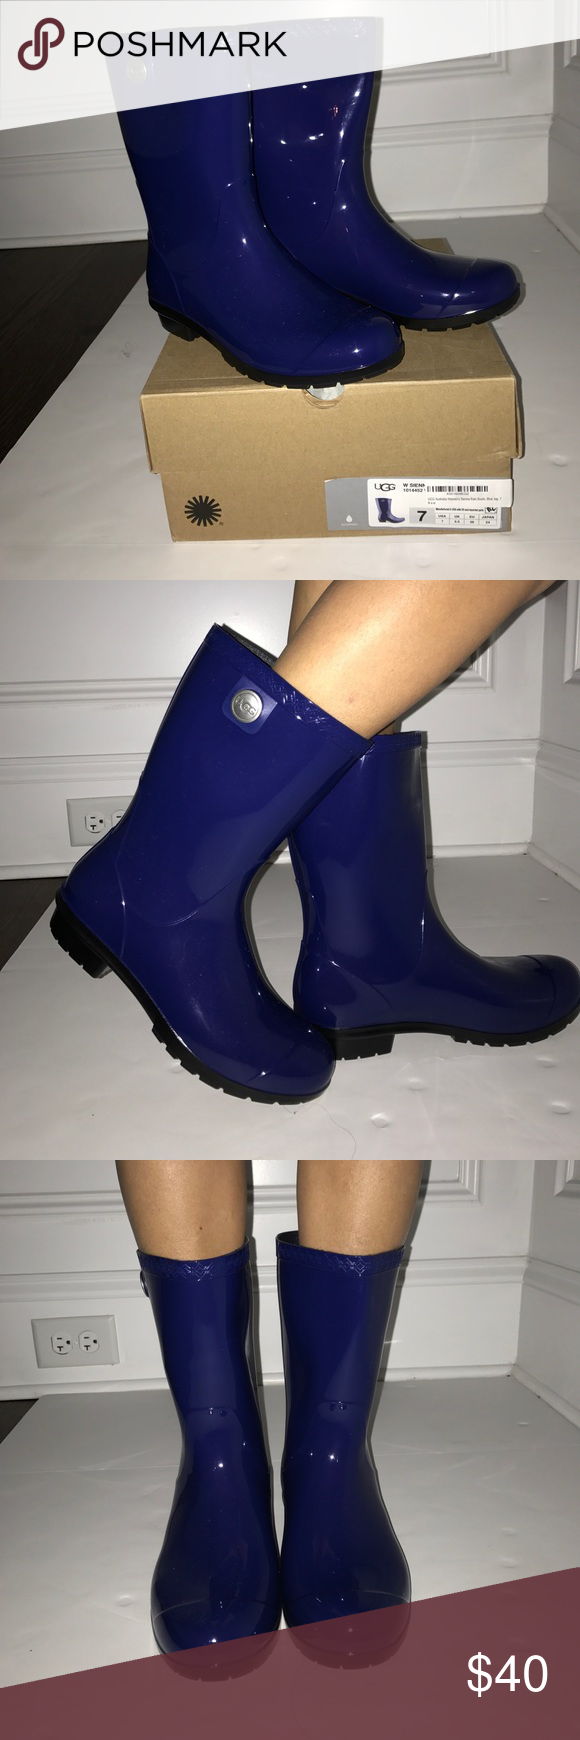 454d79847a4 UGG Sienna Rain Boot 100% Authentic UGG Sienna Rain Boot in the ...